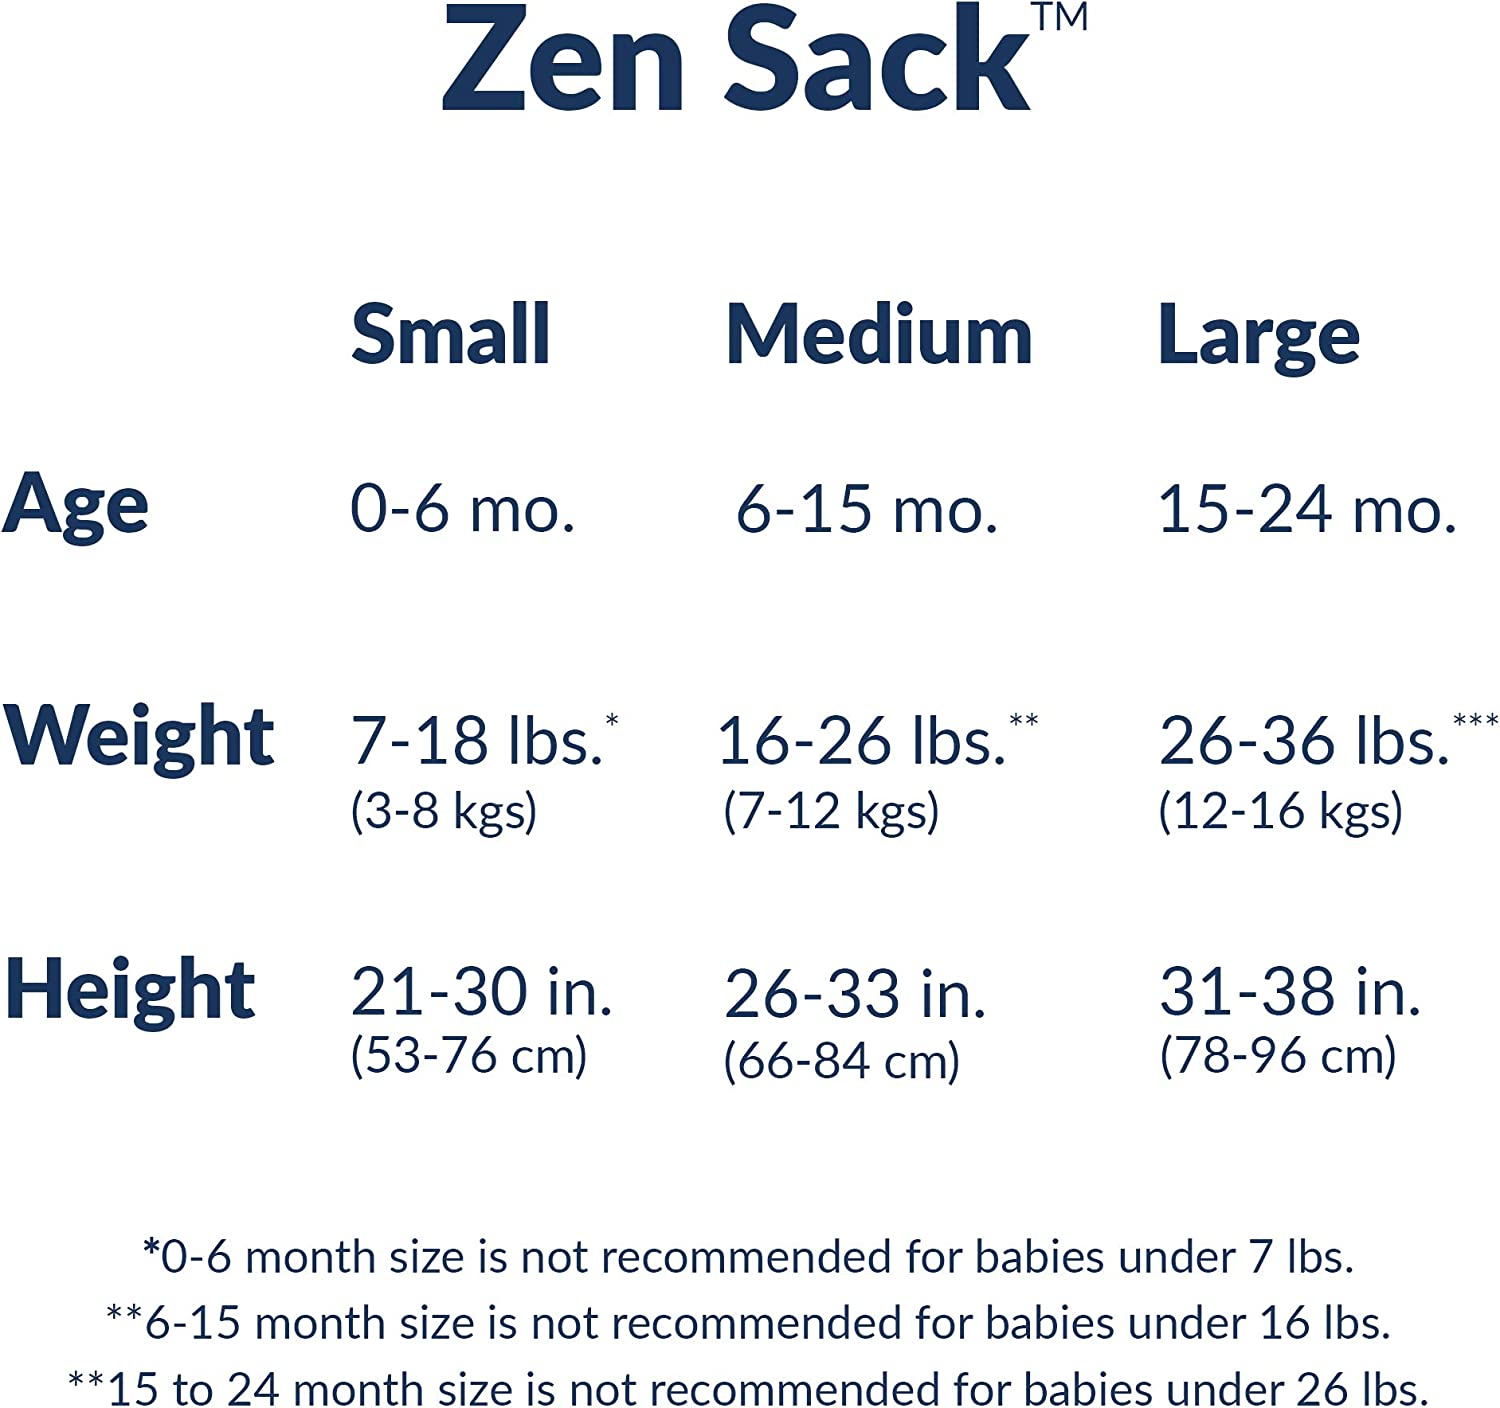 Nested Bean Zen Sack - Gently Weighted Sleep Sacks | Baby: 0-6 Months | TOG 2.5 | Help Newborn/Infant Swaddle Transition | Cotton 100% | 2-Way Zipper | Machine Washable: Kitchen & Dining